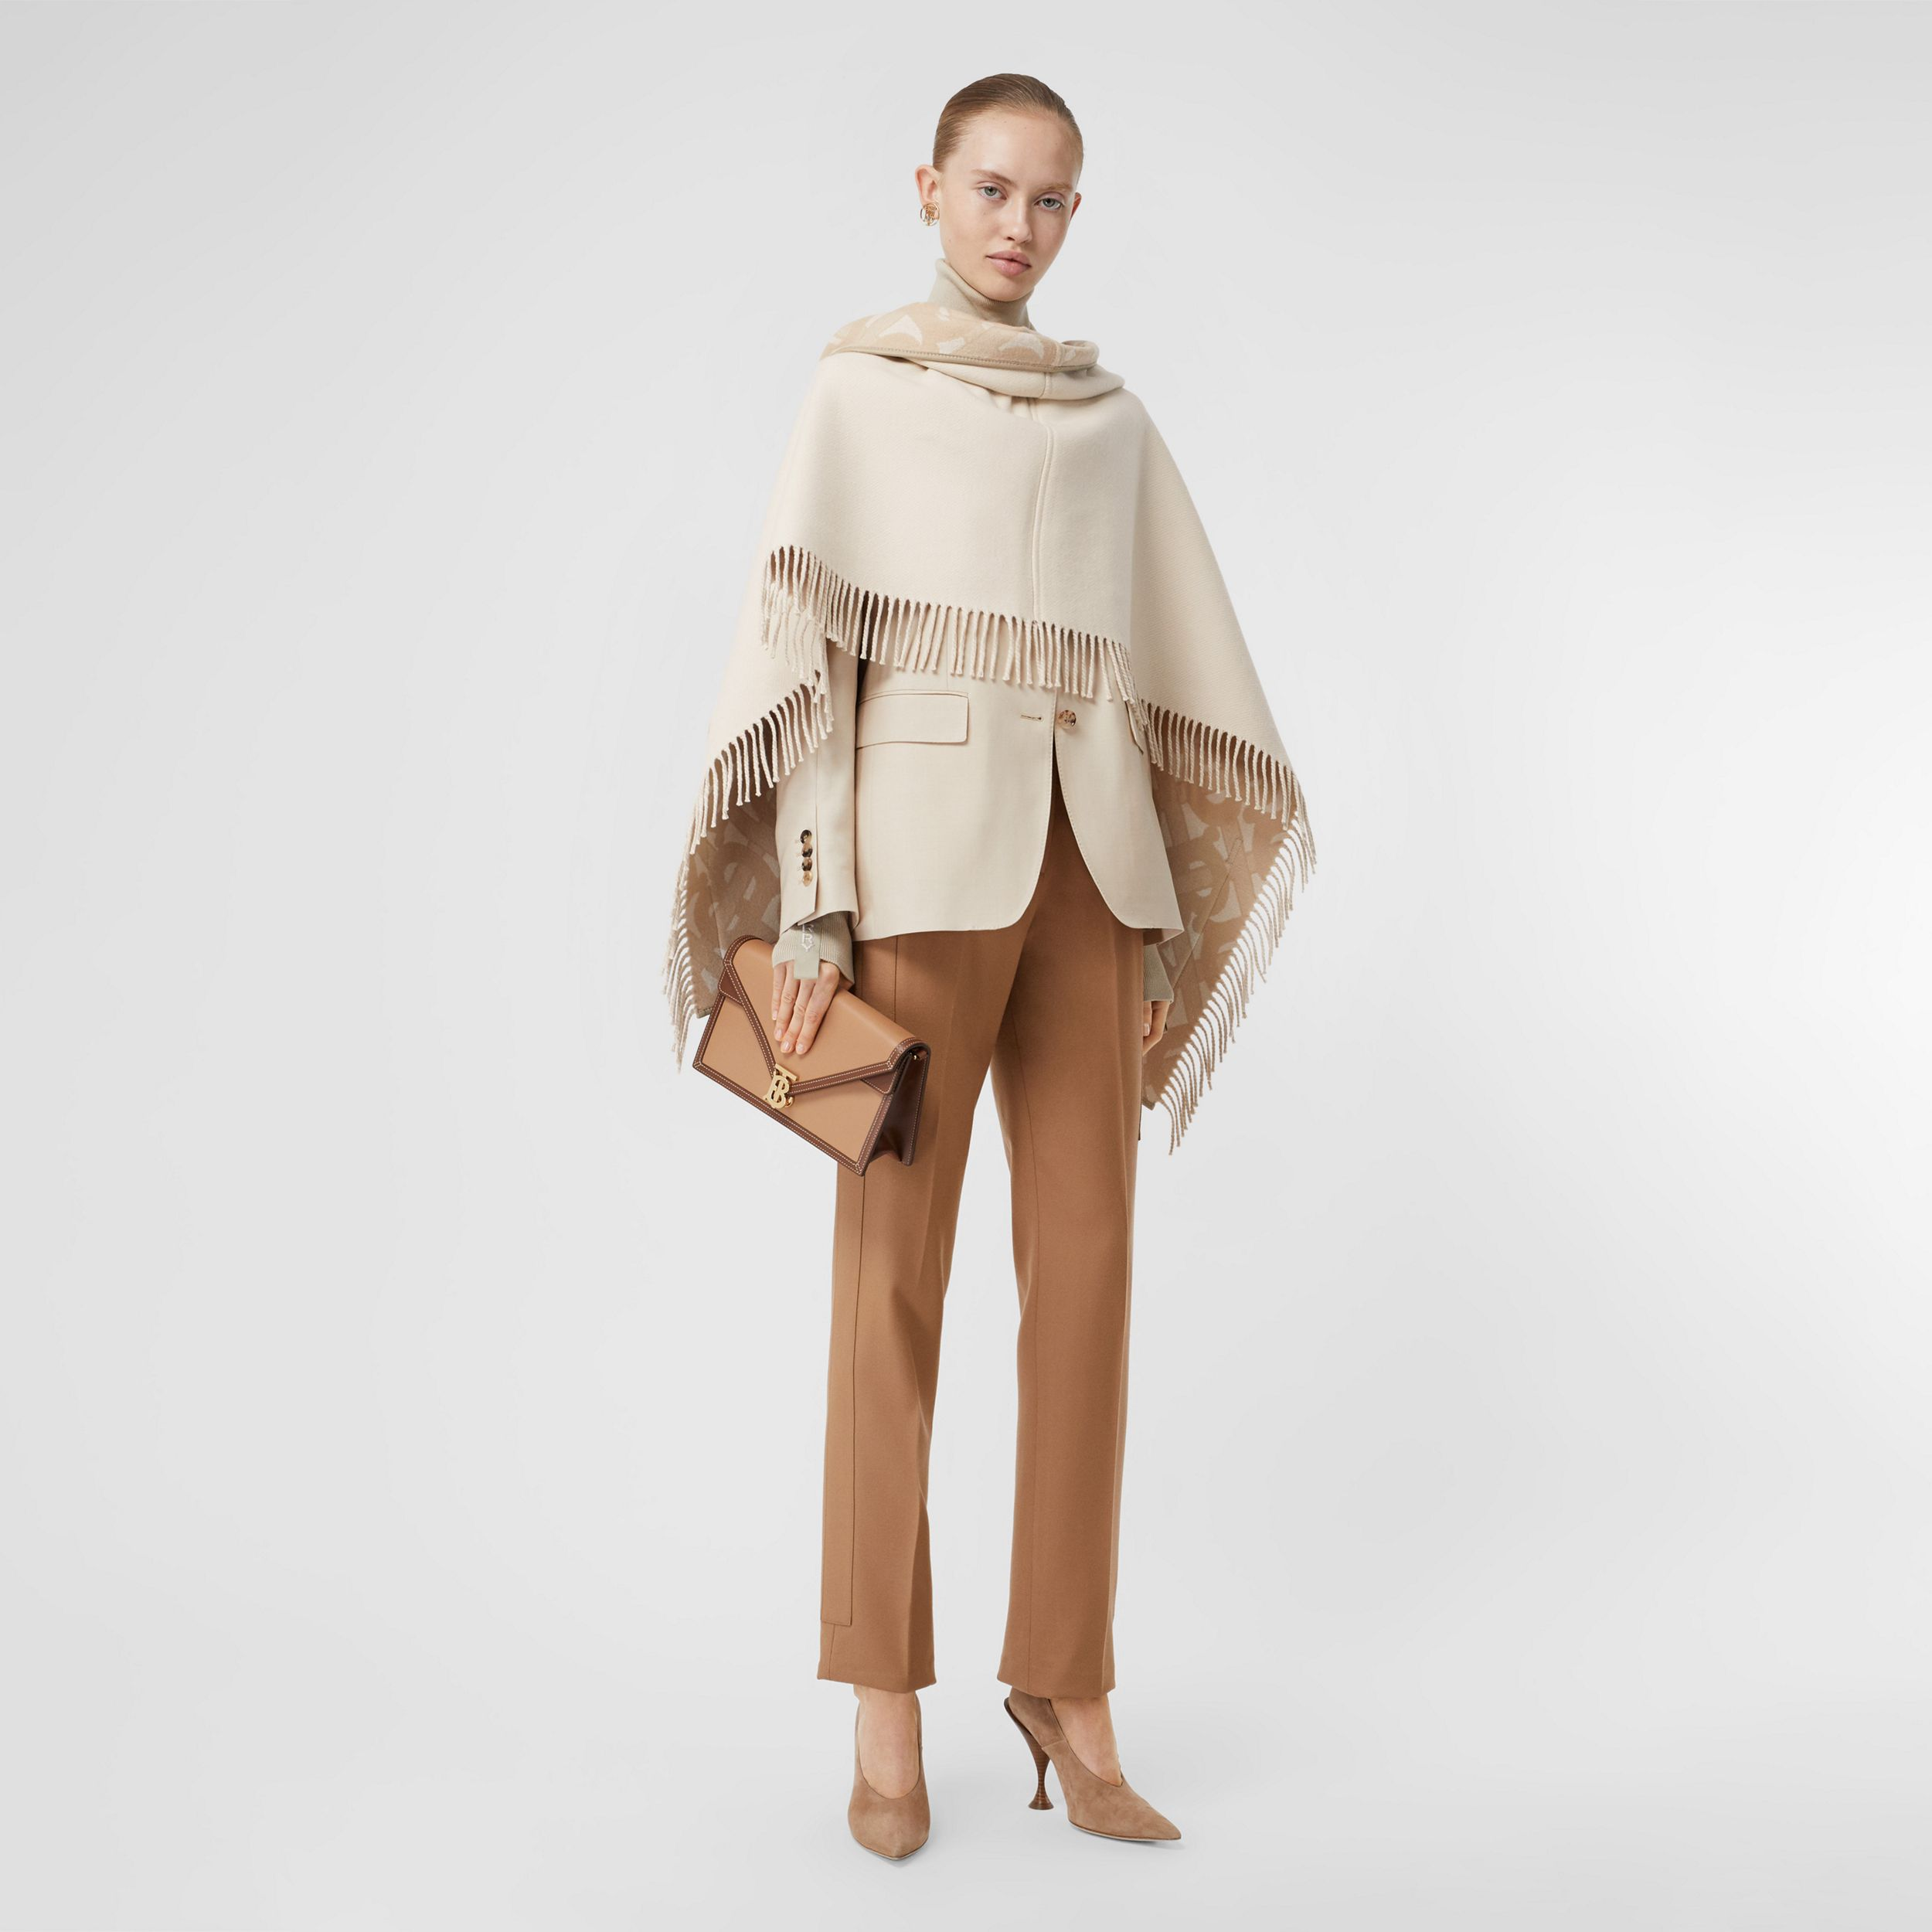 Monogram Merino Wool Cashmere Jacquard Cape in Soft Fawn - Women | Burberry - 1